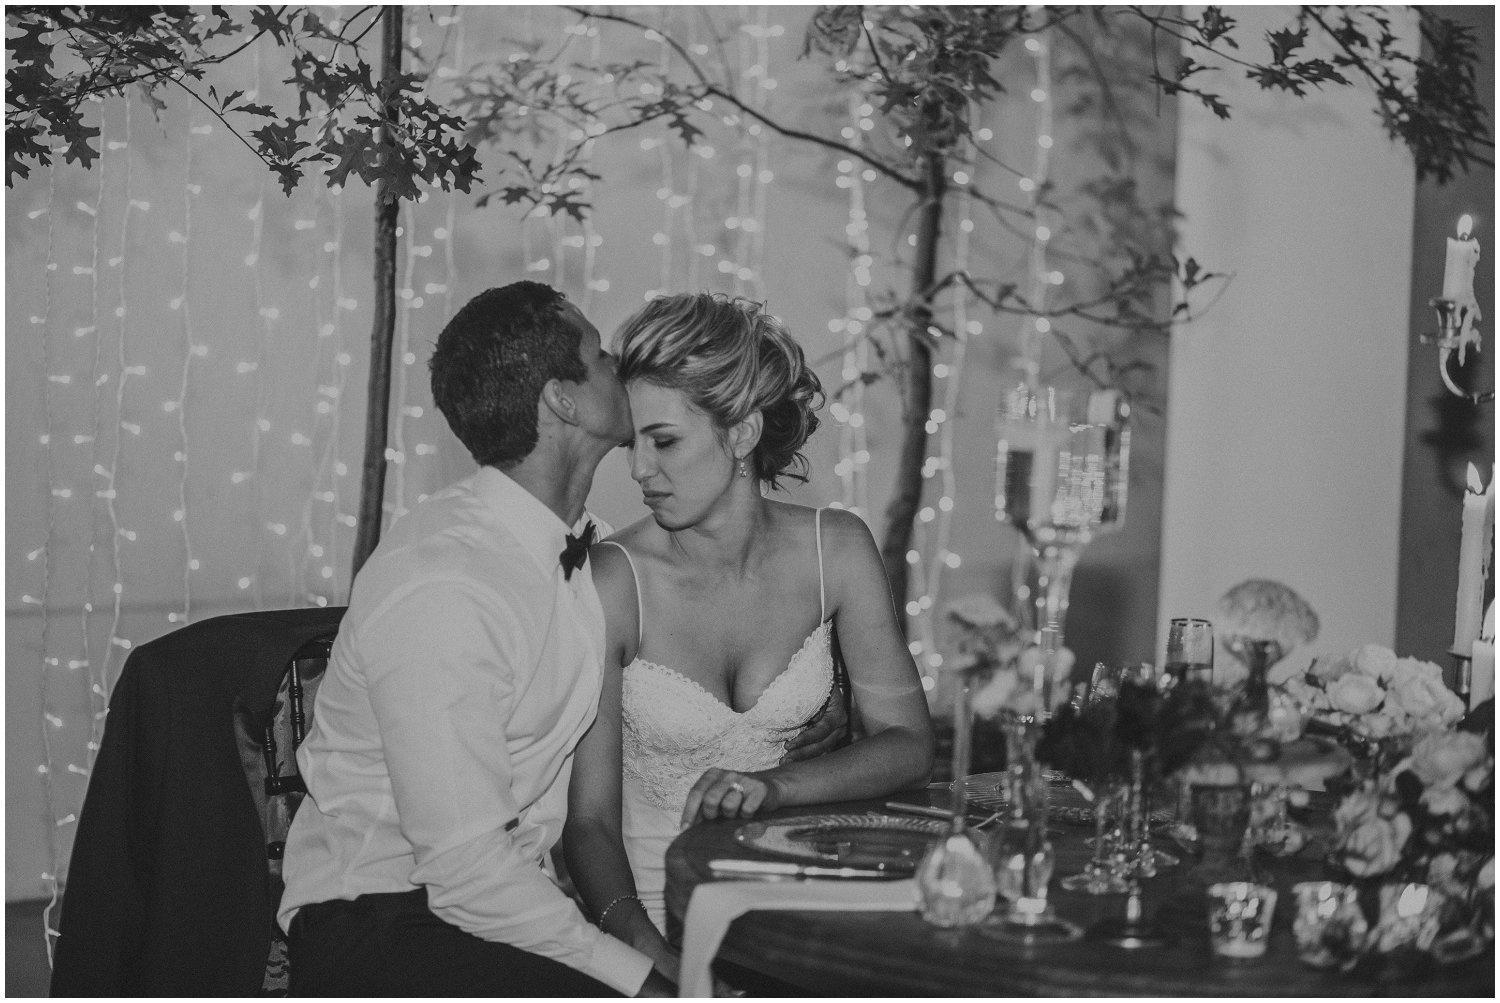 Top Artistic Creative Documentary Wedding Photographer Cape Town South Africa Rue Kruger_0182.jpg